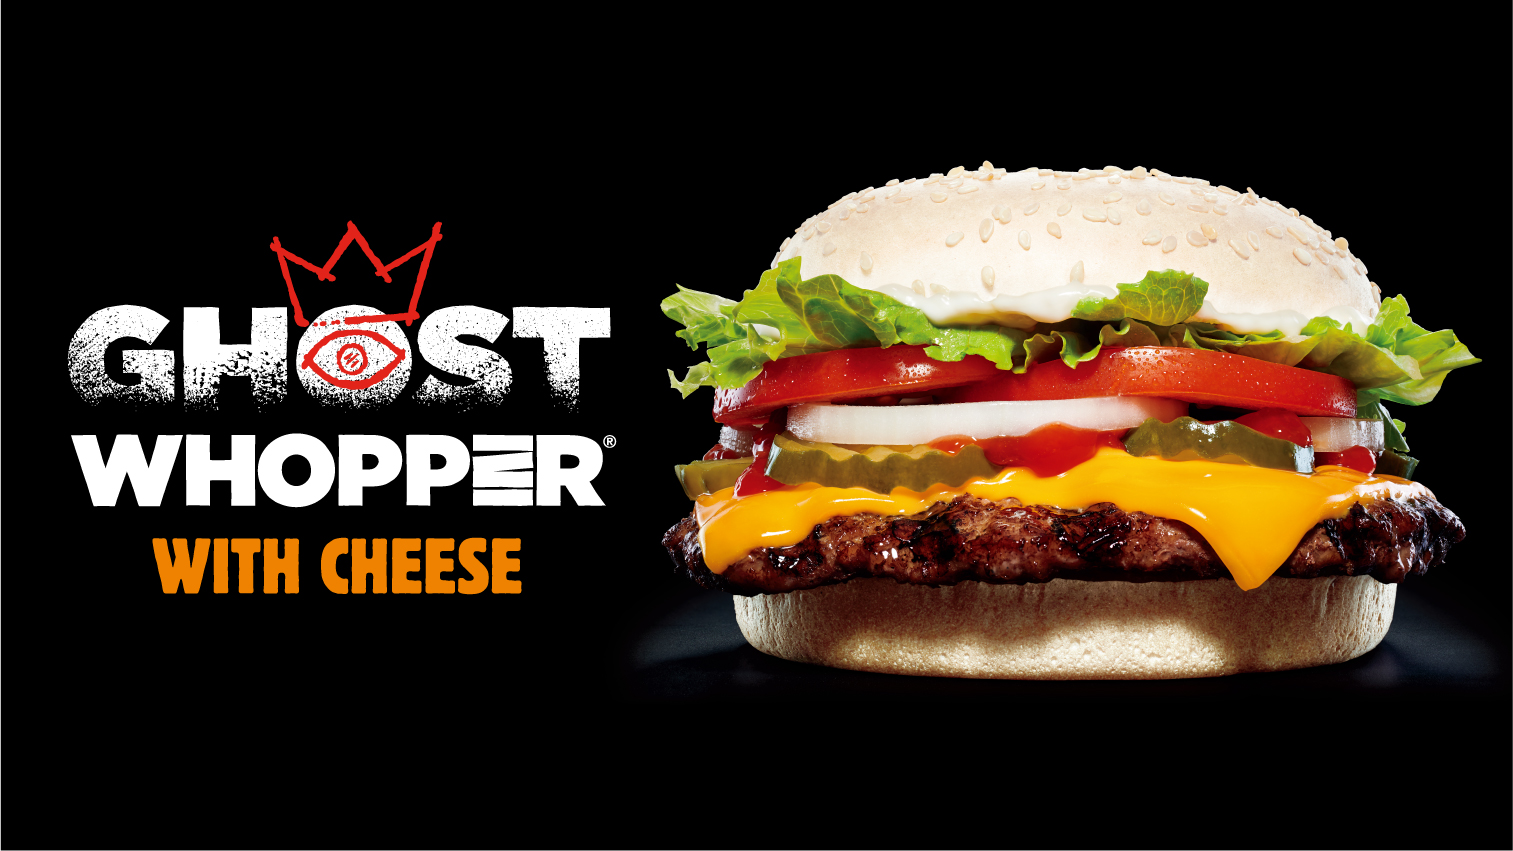 Burger King Halloween Whopper 2020 Burger King opens world's first Ghost Store in Shibuya with the